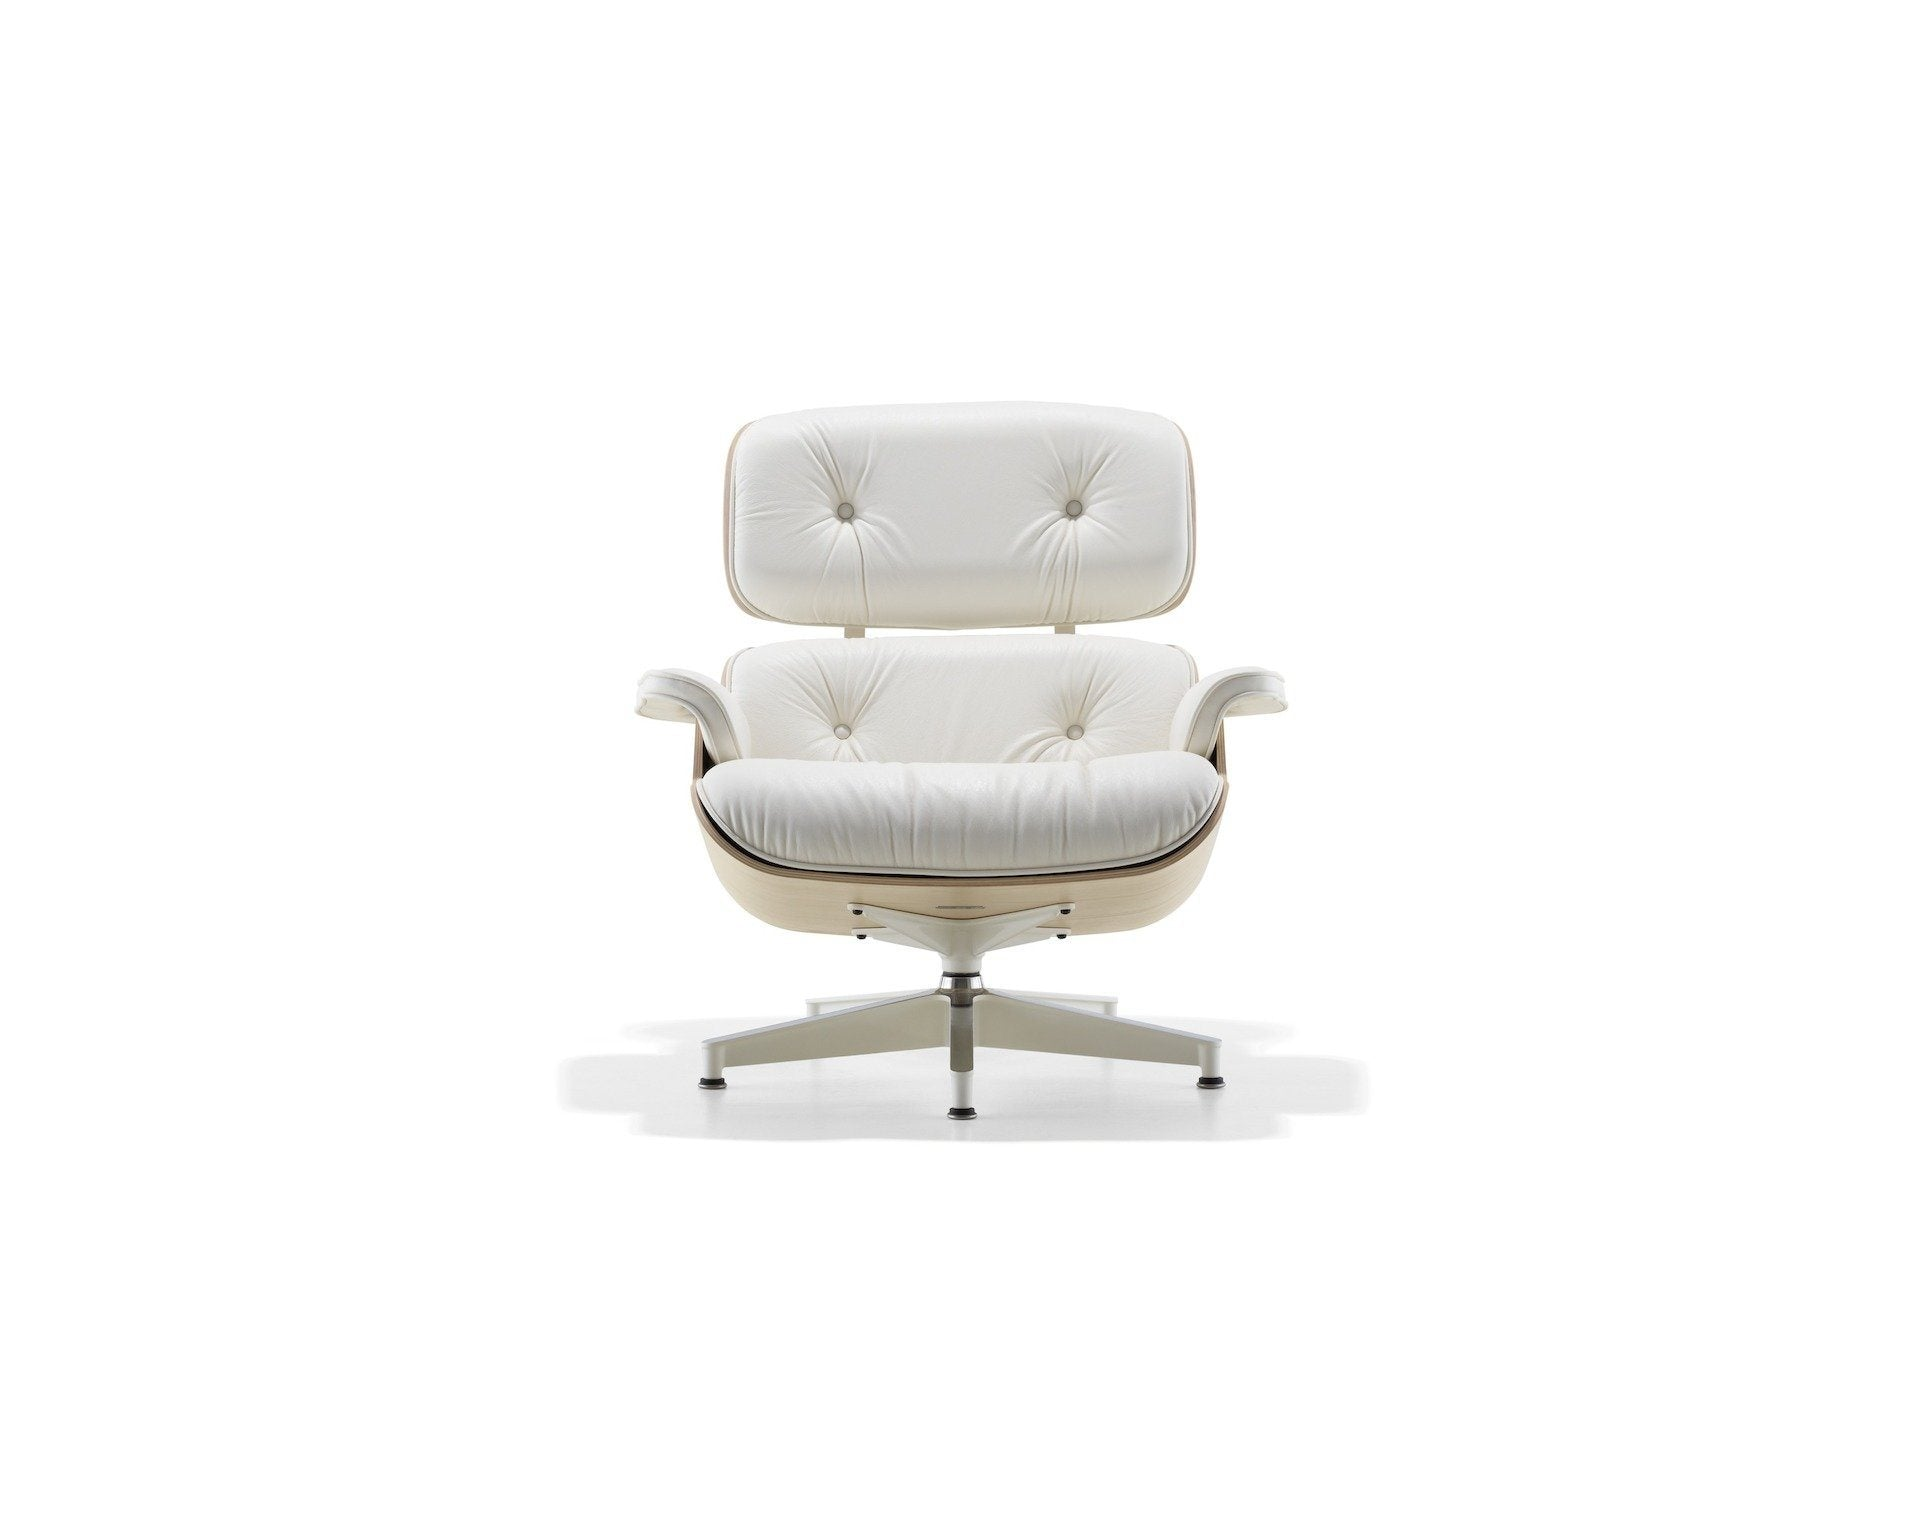 Incredible Eames Style Lounge Chair White Leather White Oak Frame Bralicious Painted Fabric Chair Ideas Braliciousco